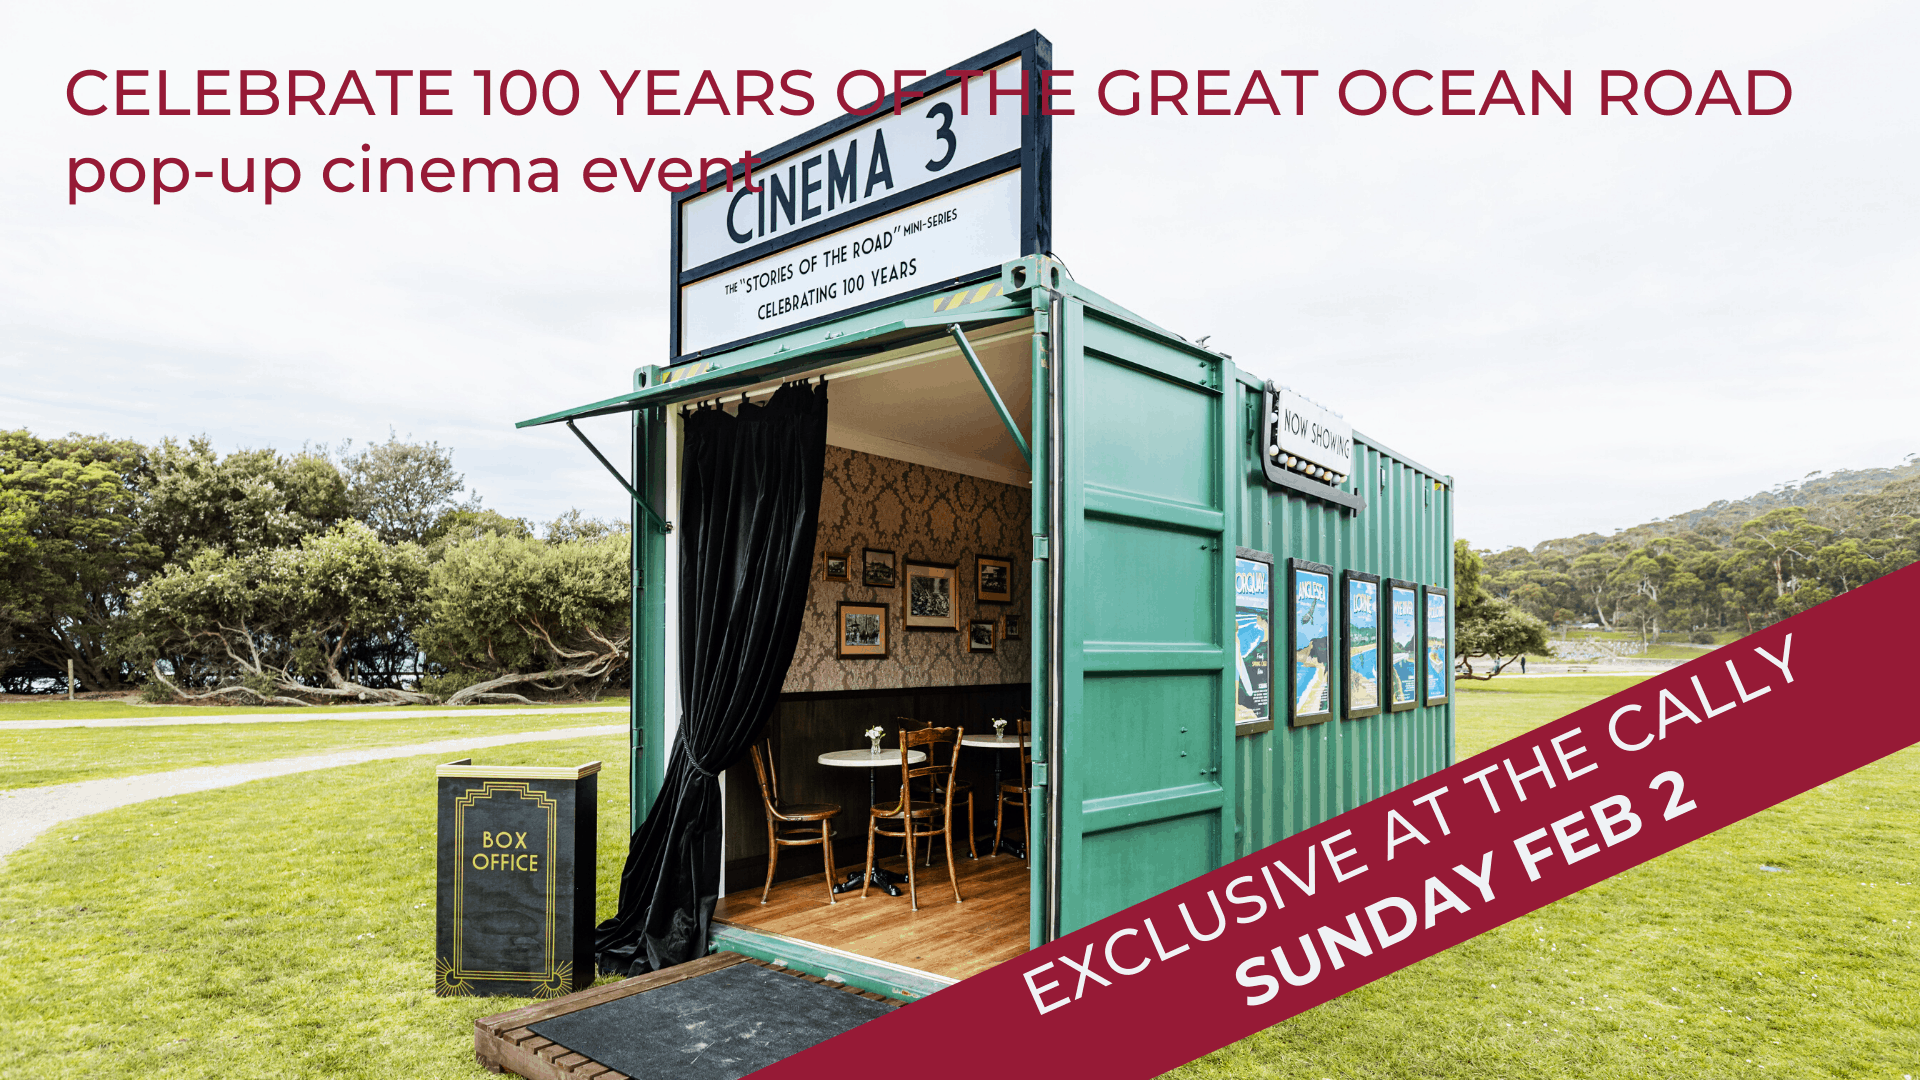 celebrate 100 years of the great ocean road with this pop up cinema exhibition at The Cally